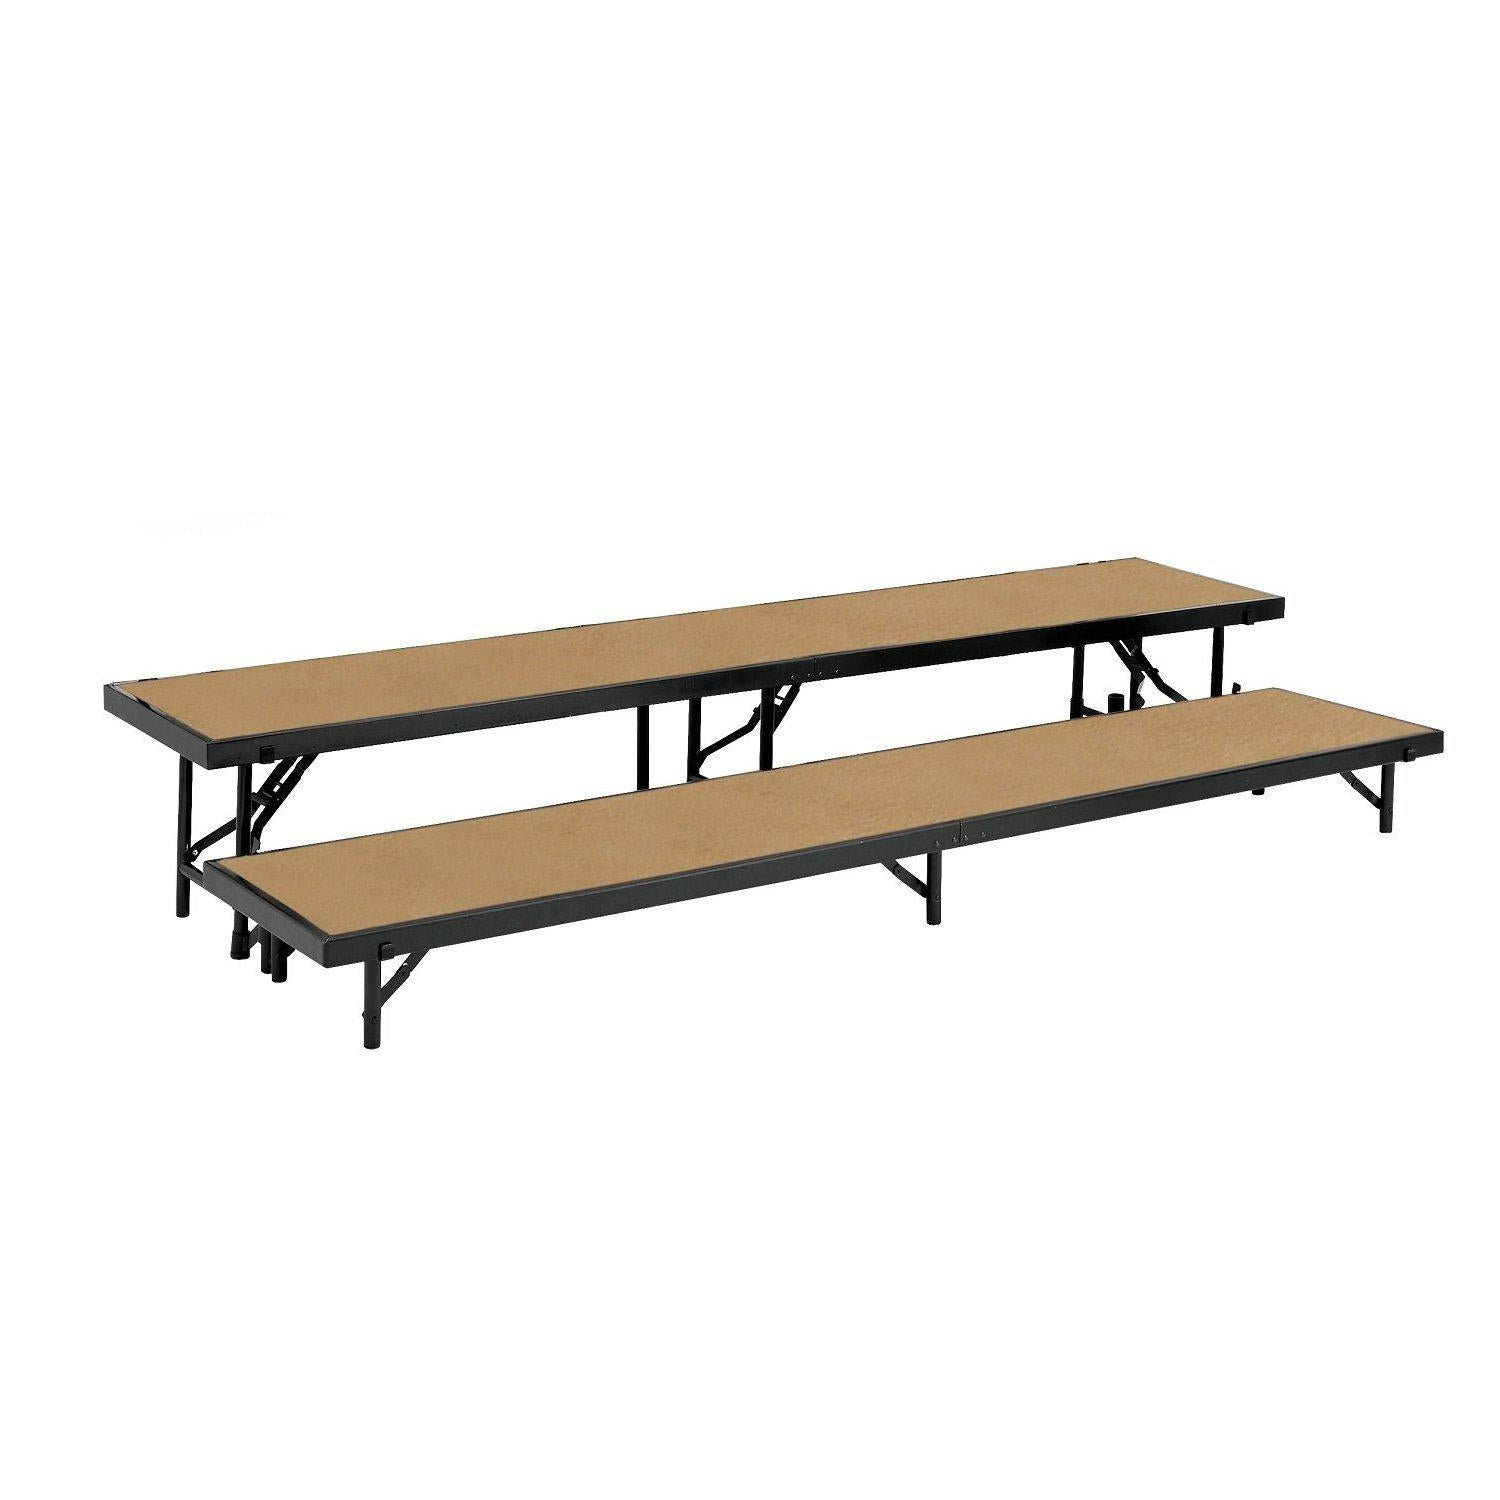 "NPS® Multi-Level Straight Standing Choral Risers, 18"" x 96"" Platforms"